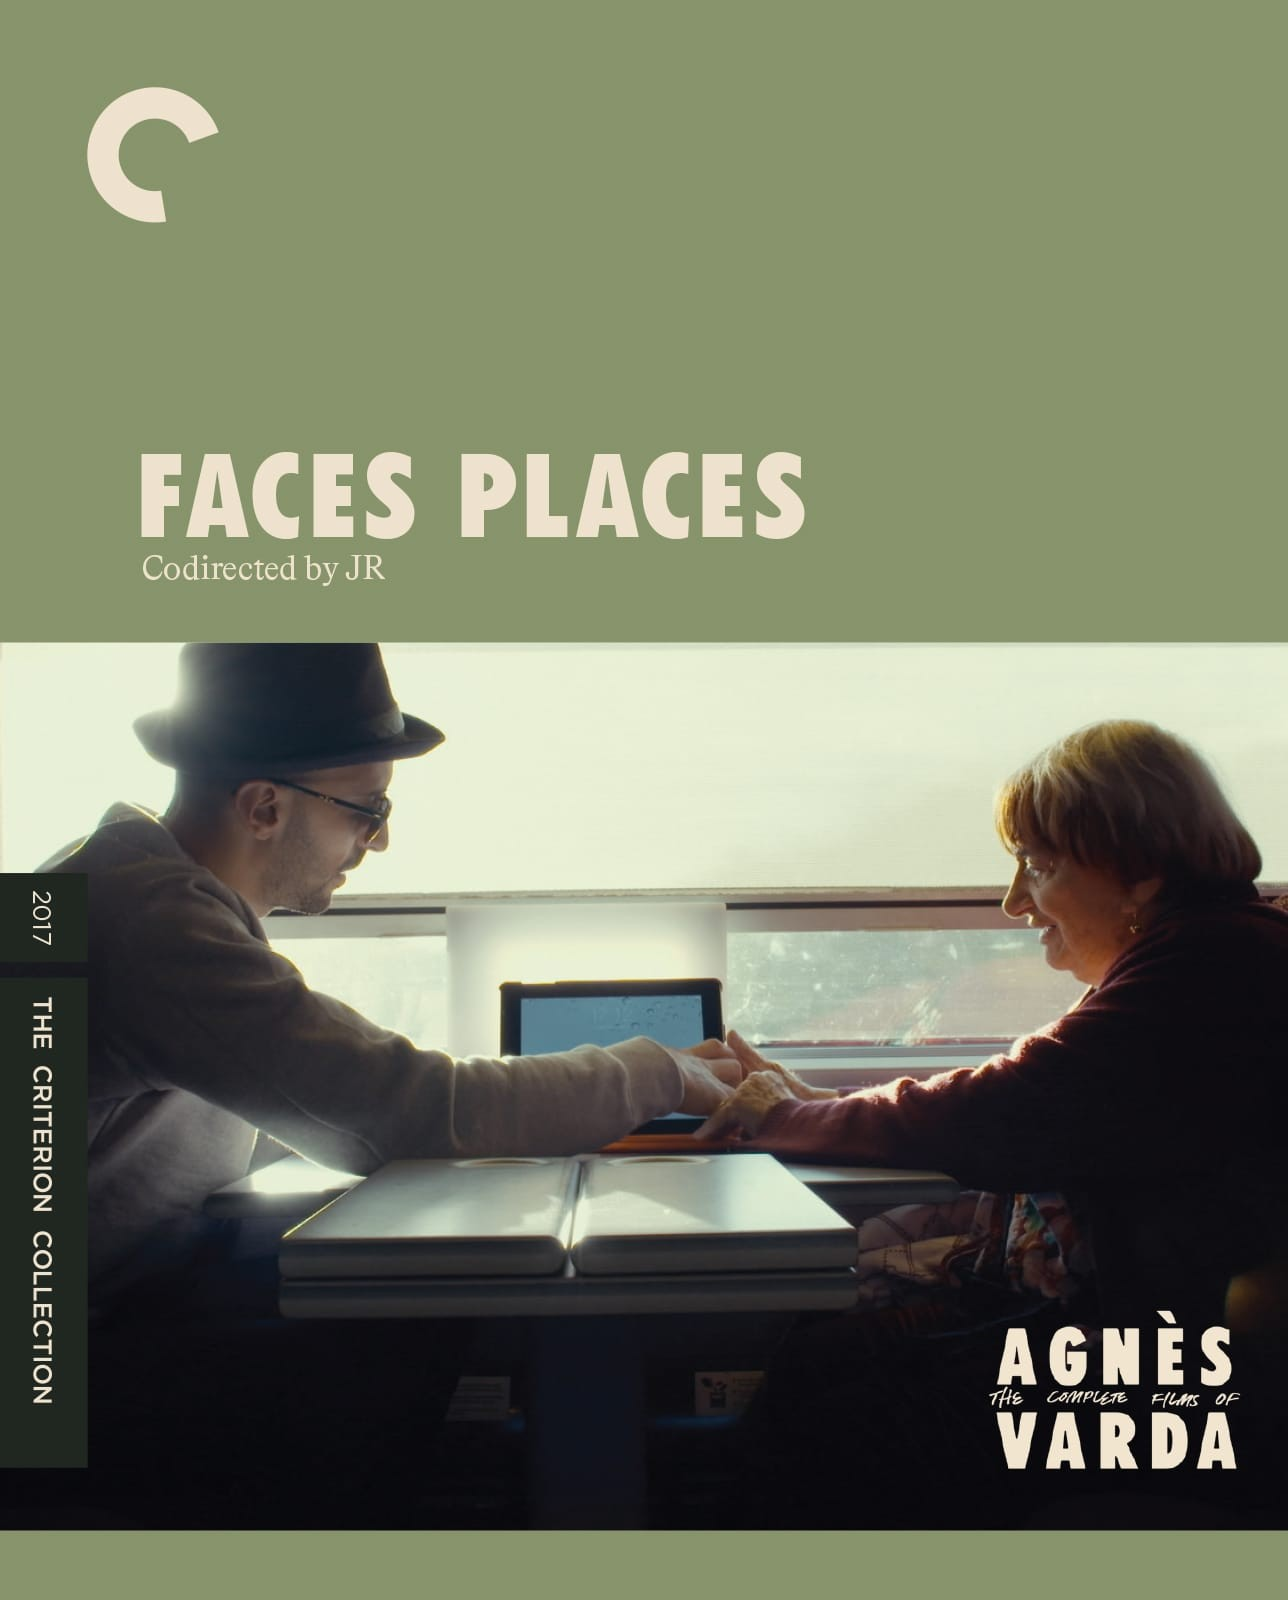 Faces Places (2017) | The Criterion Collection